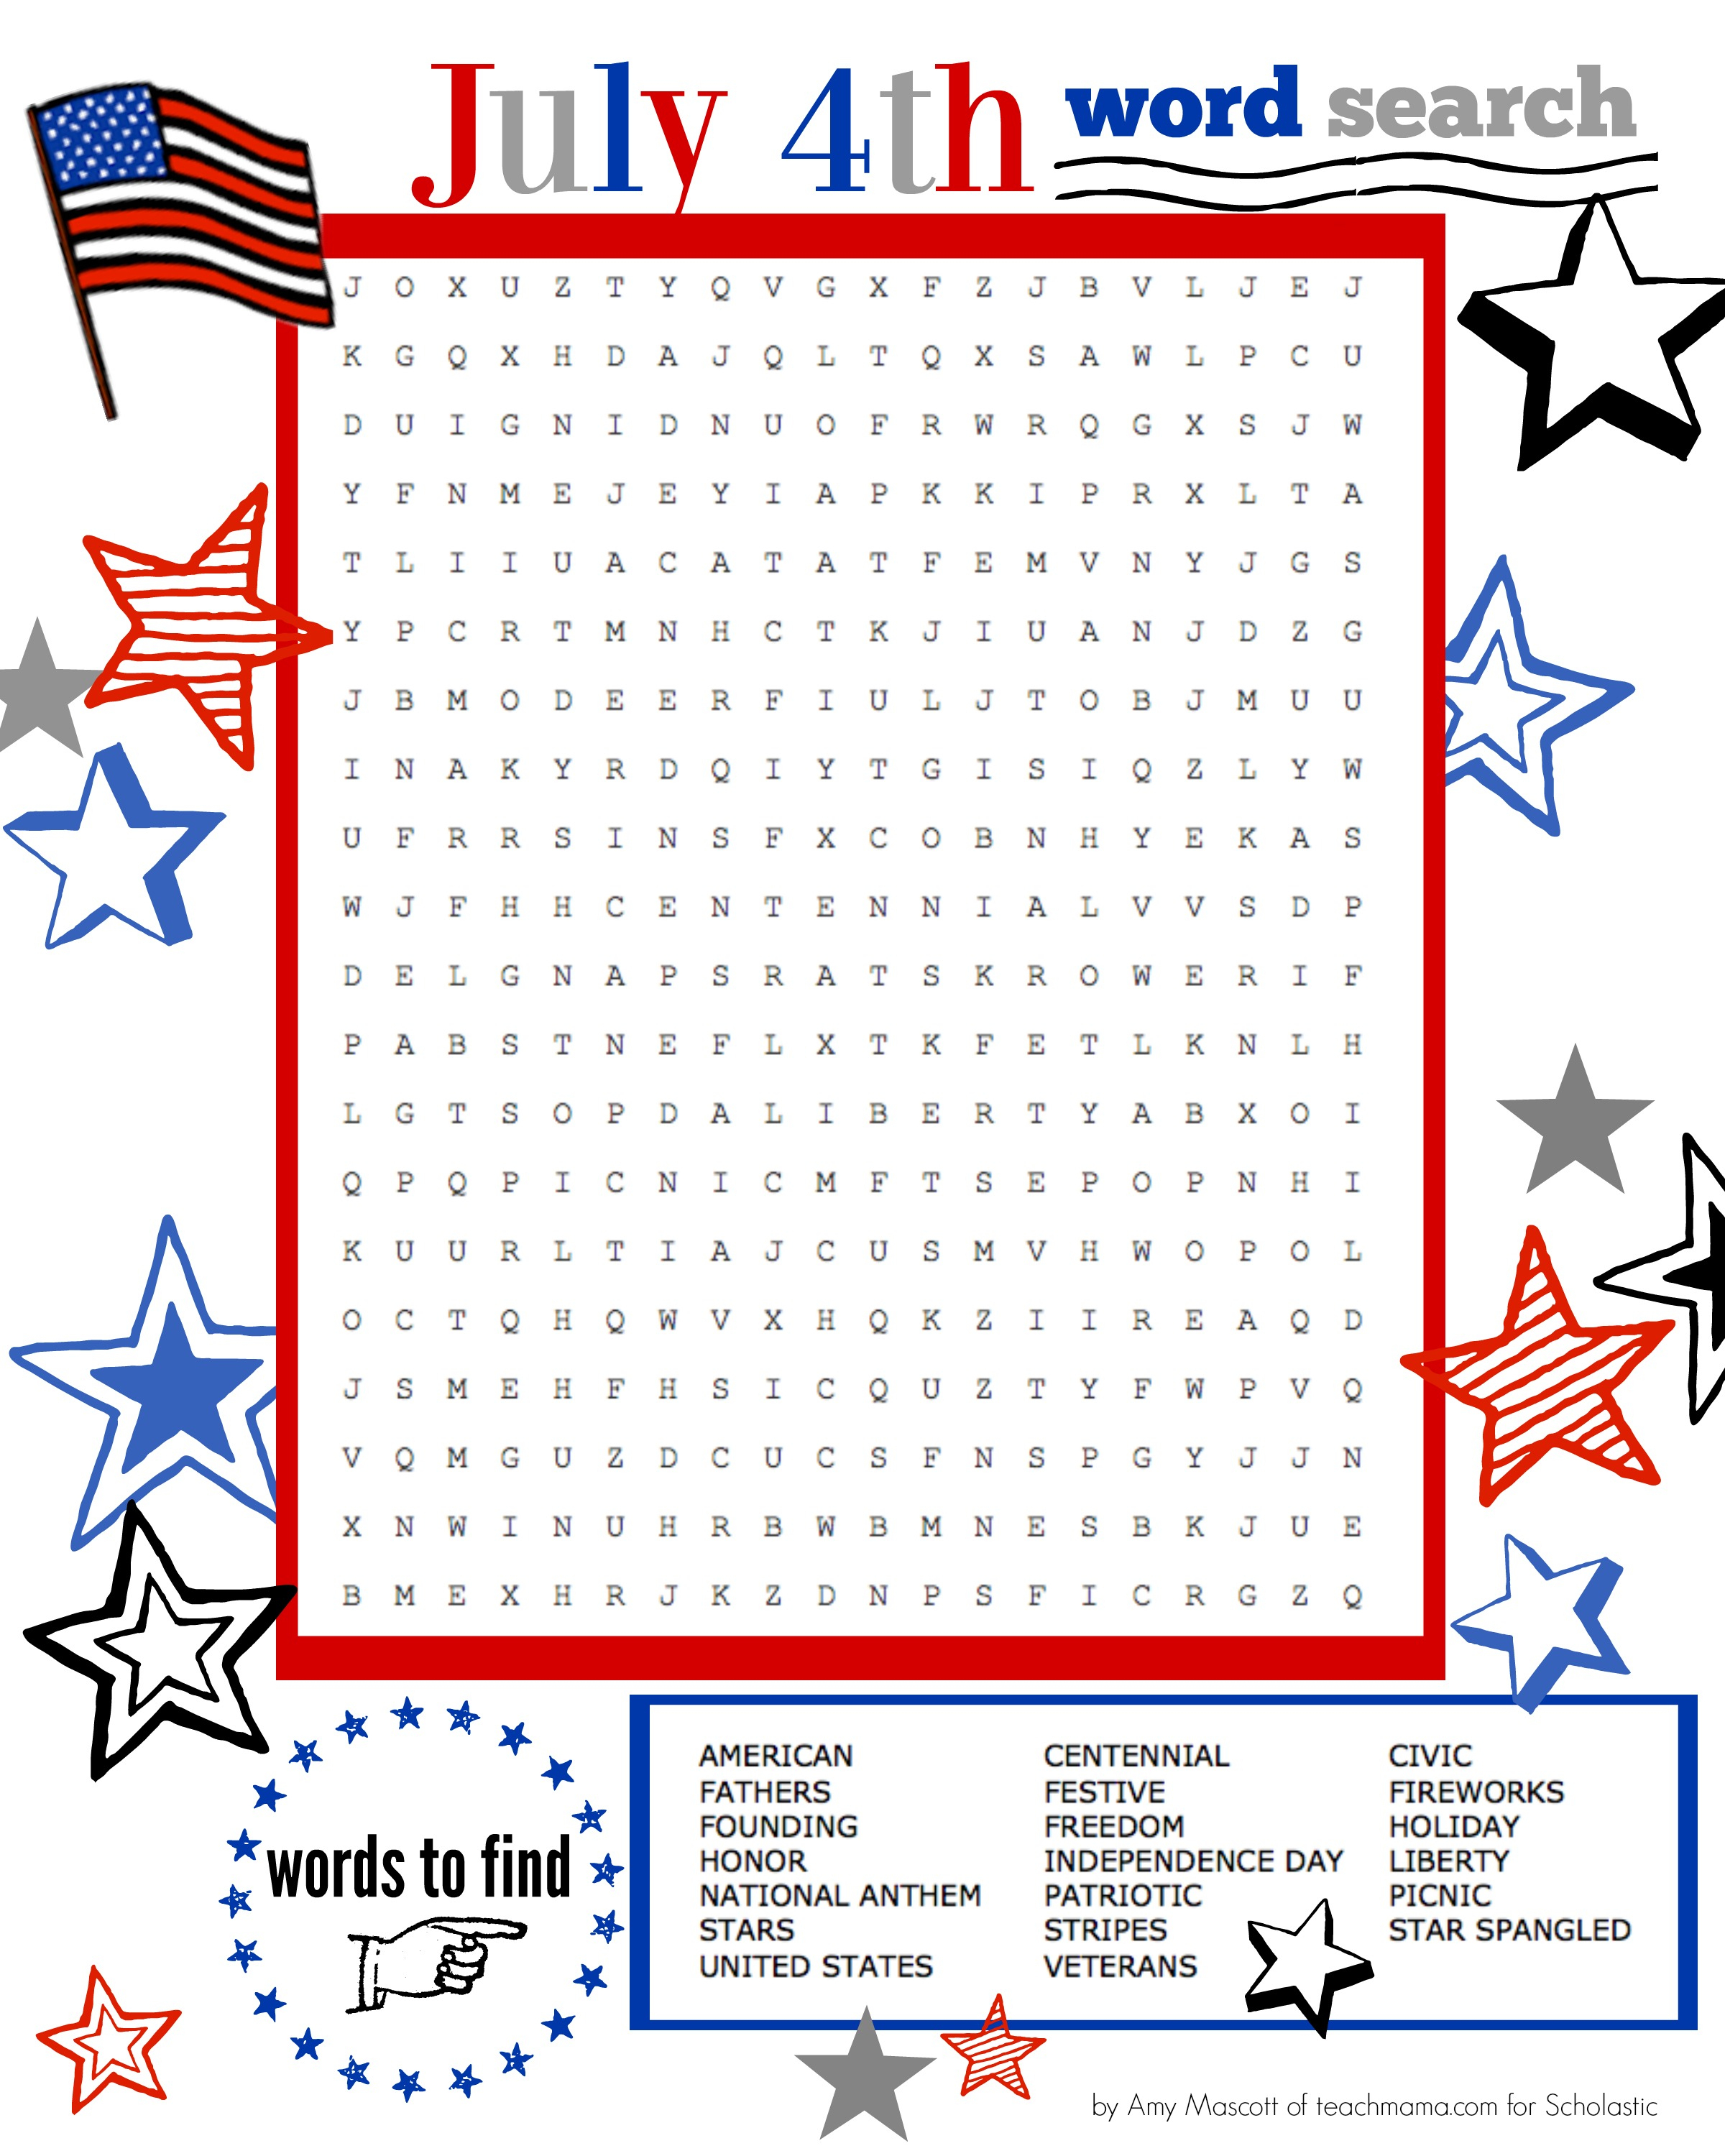 Superstar Celebration: July 4Th Word Search Printable | Scholastic - Printable Fourth Of July Crossword Puzzles